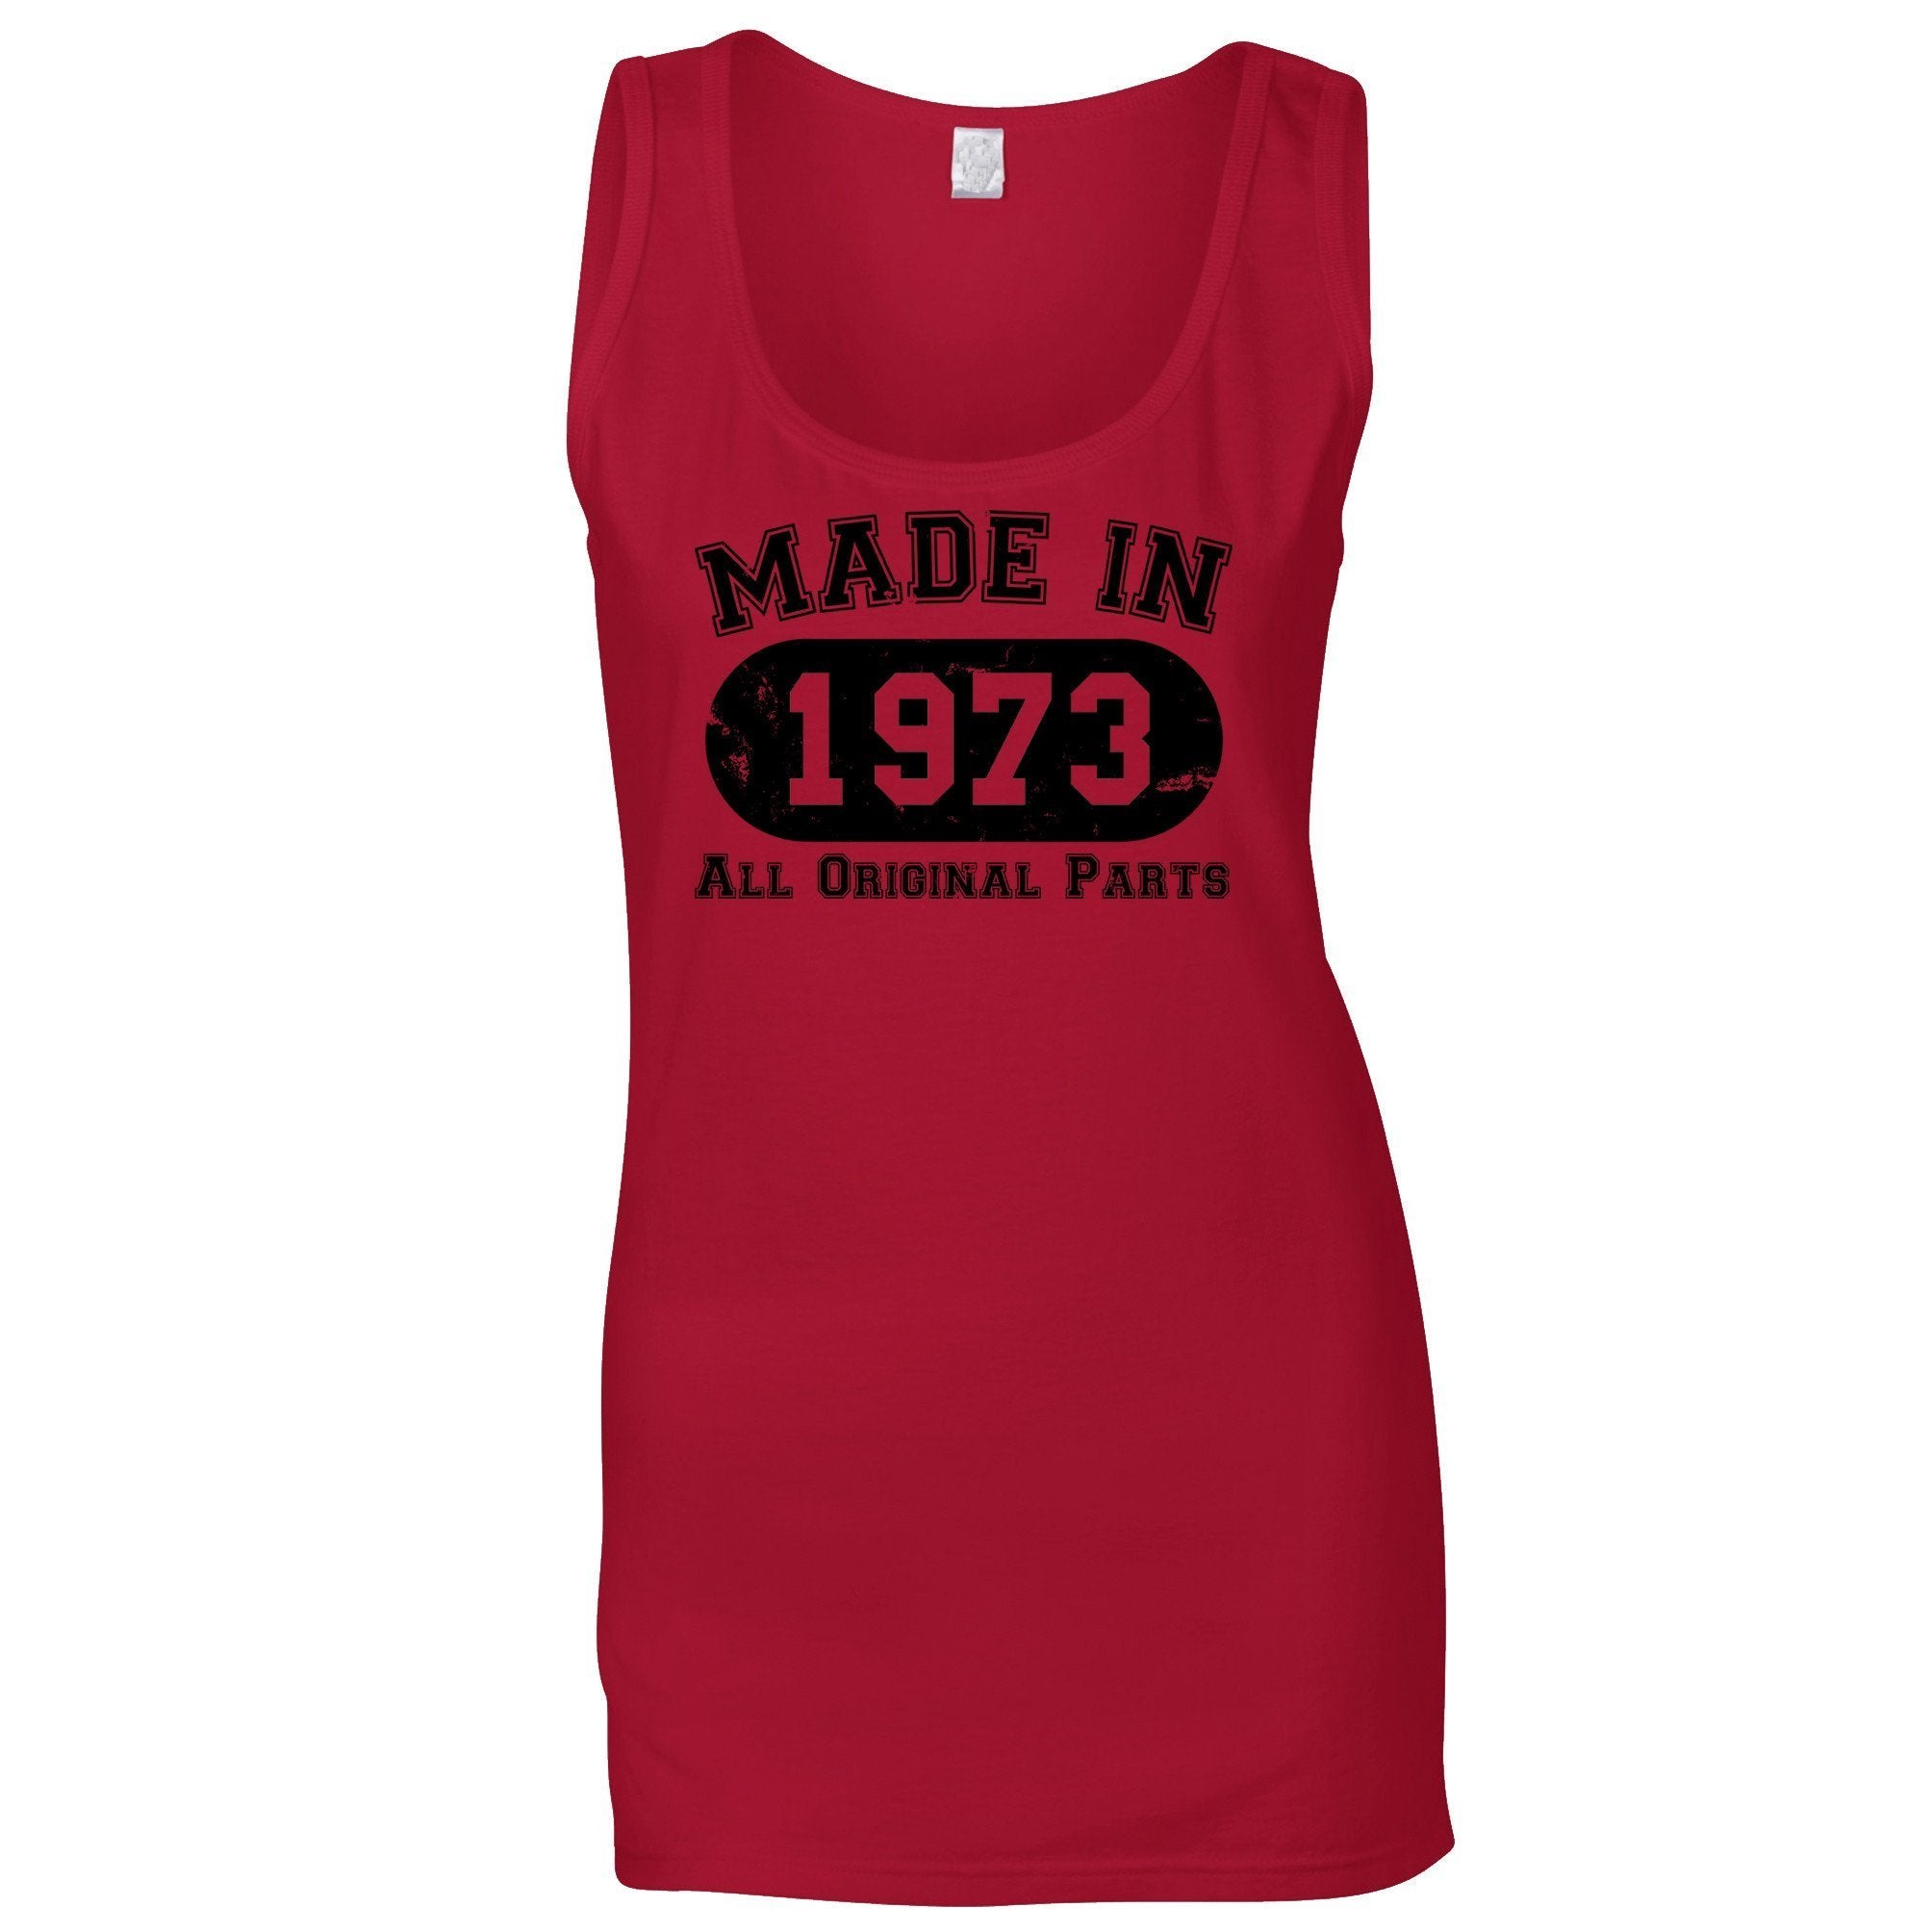 Made in 1973 All Original Parts Womens Vest [Distressed]